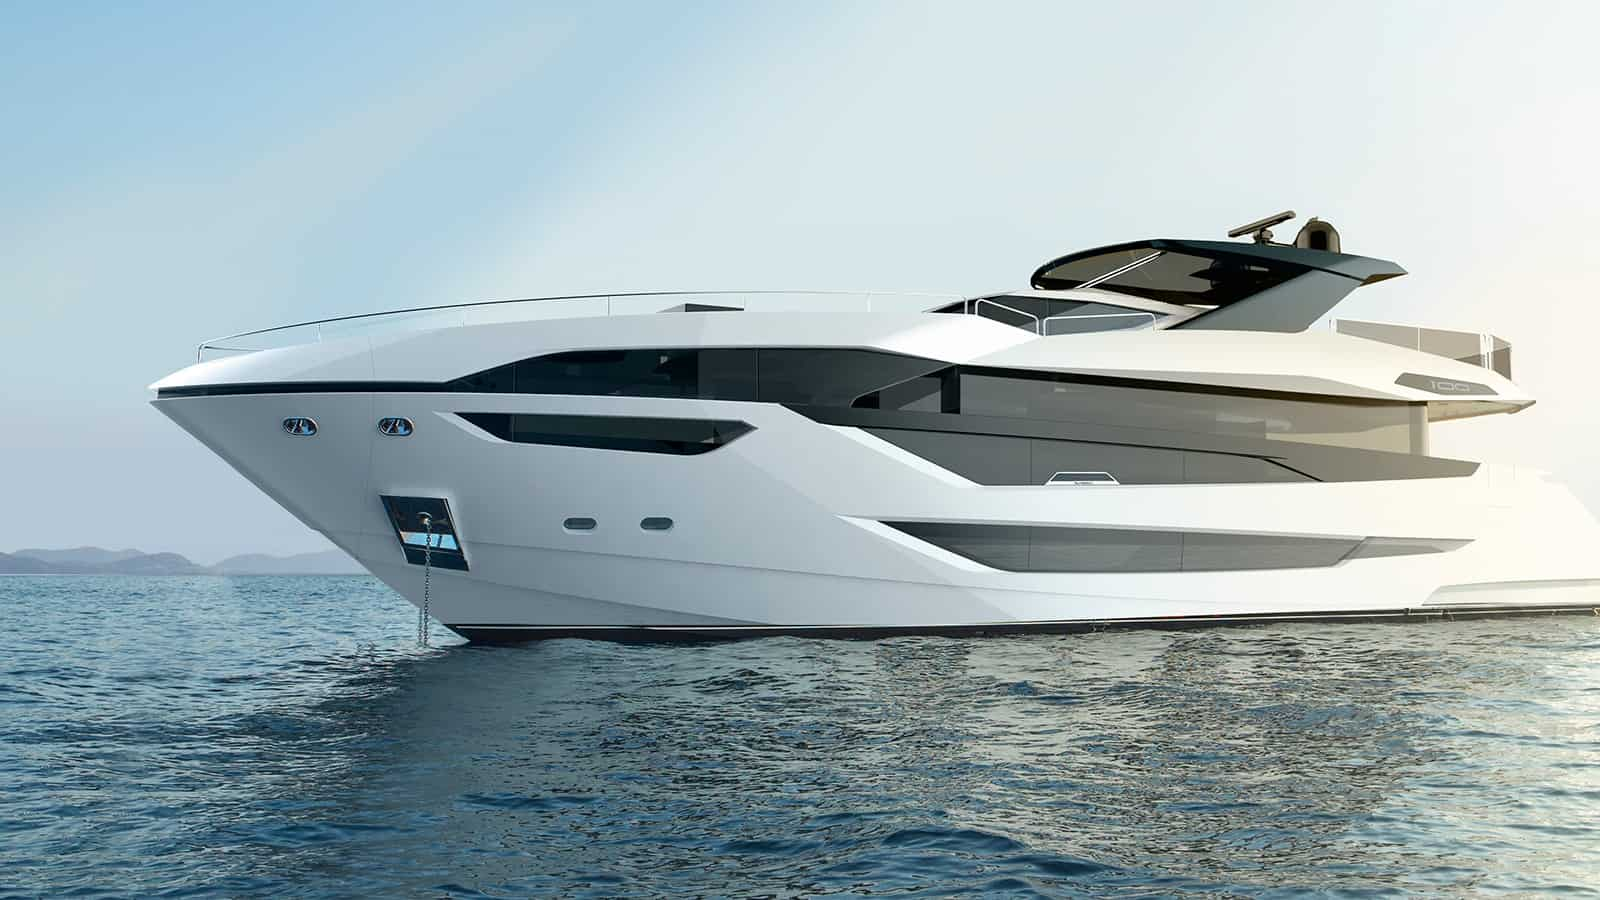 The Sunseeker 100 Yacht Promises to be a Spectacle in Any Waters